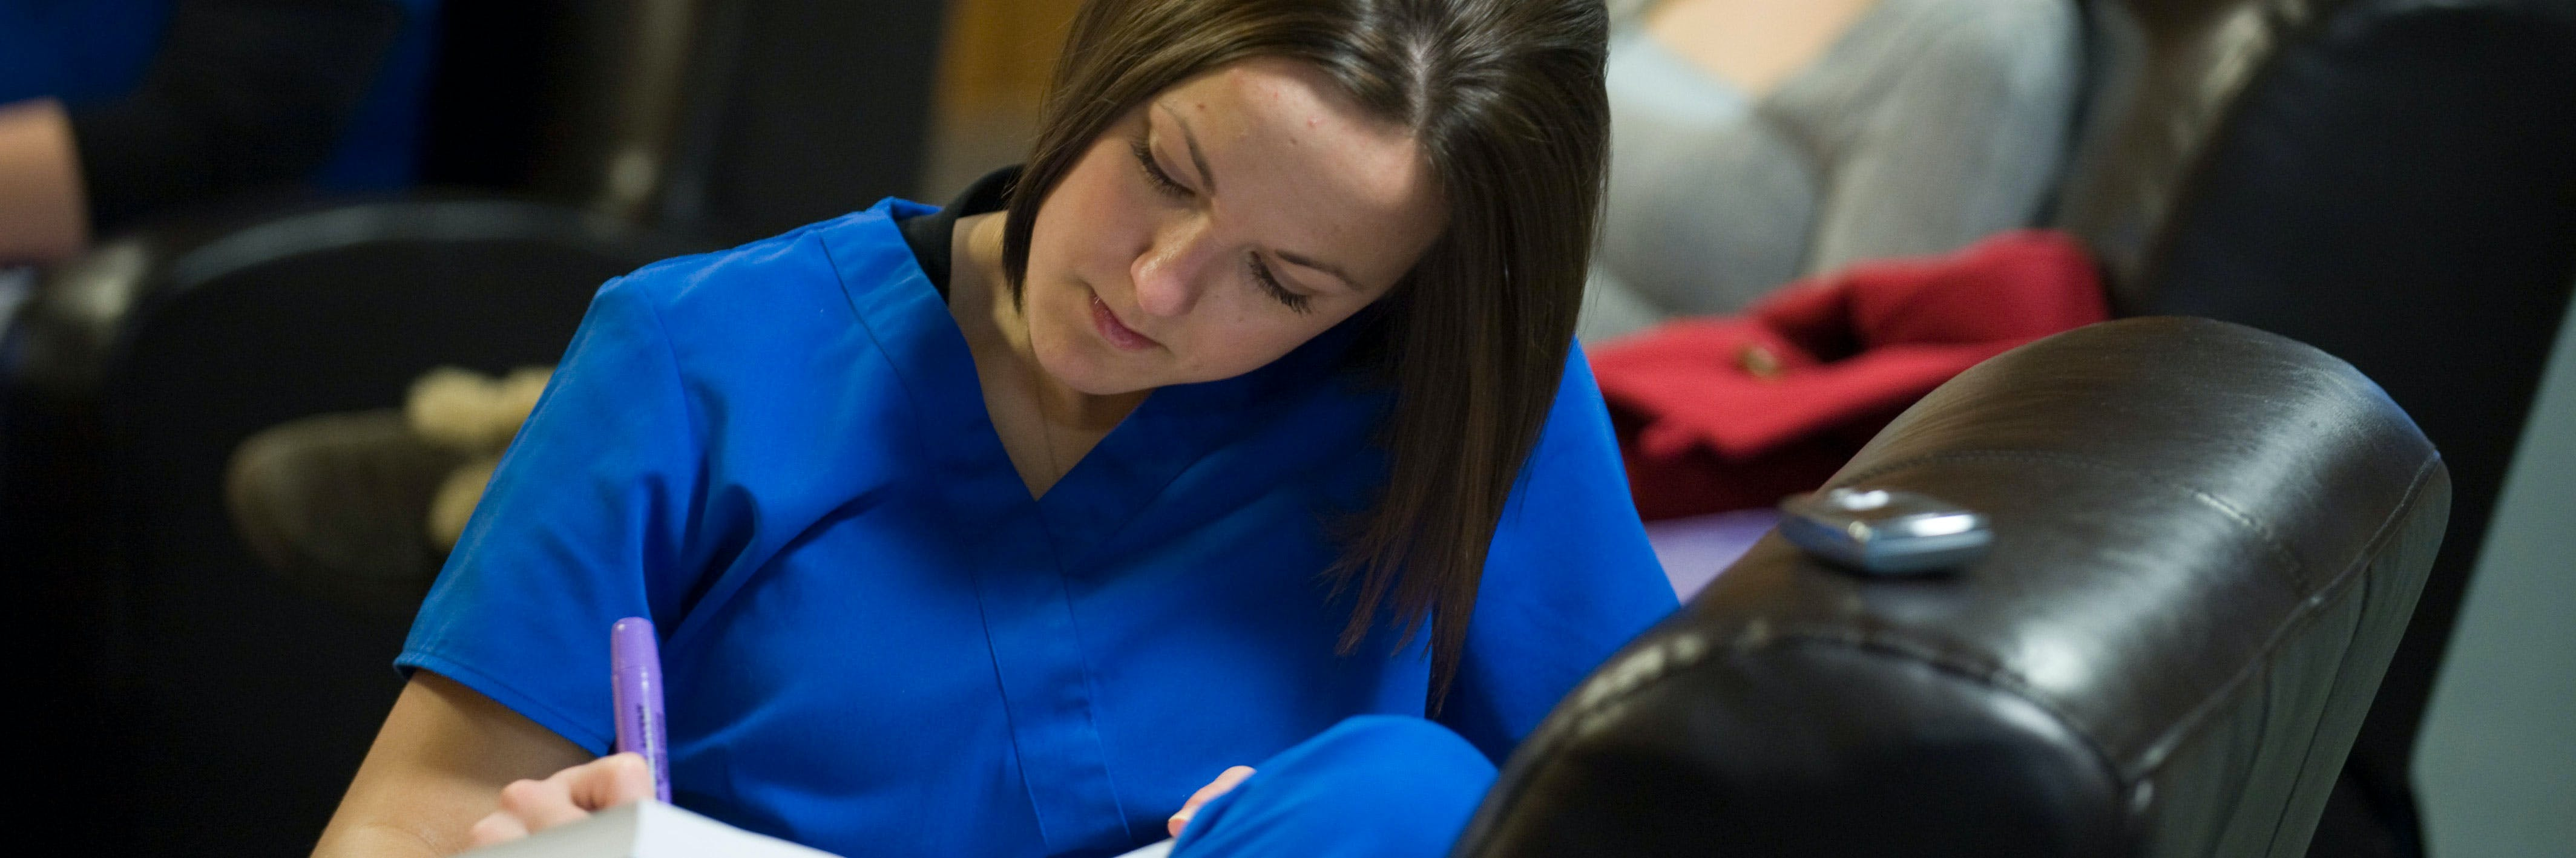 Bethel University's Post-Baccalaureate Nursing program is designed for adult students looking to make a career change to nursing.